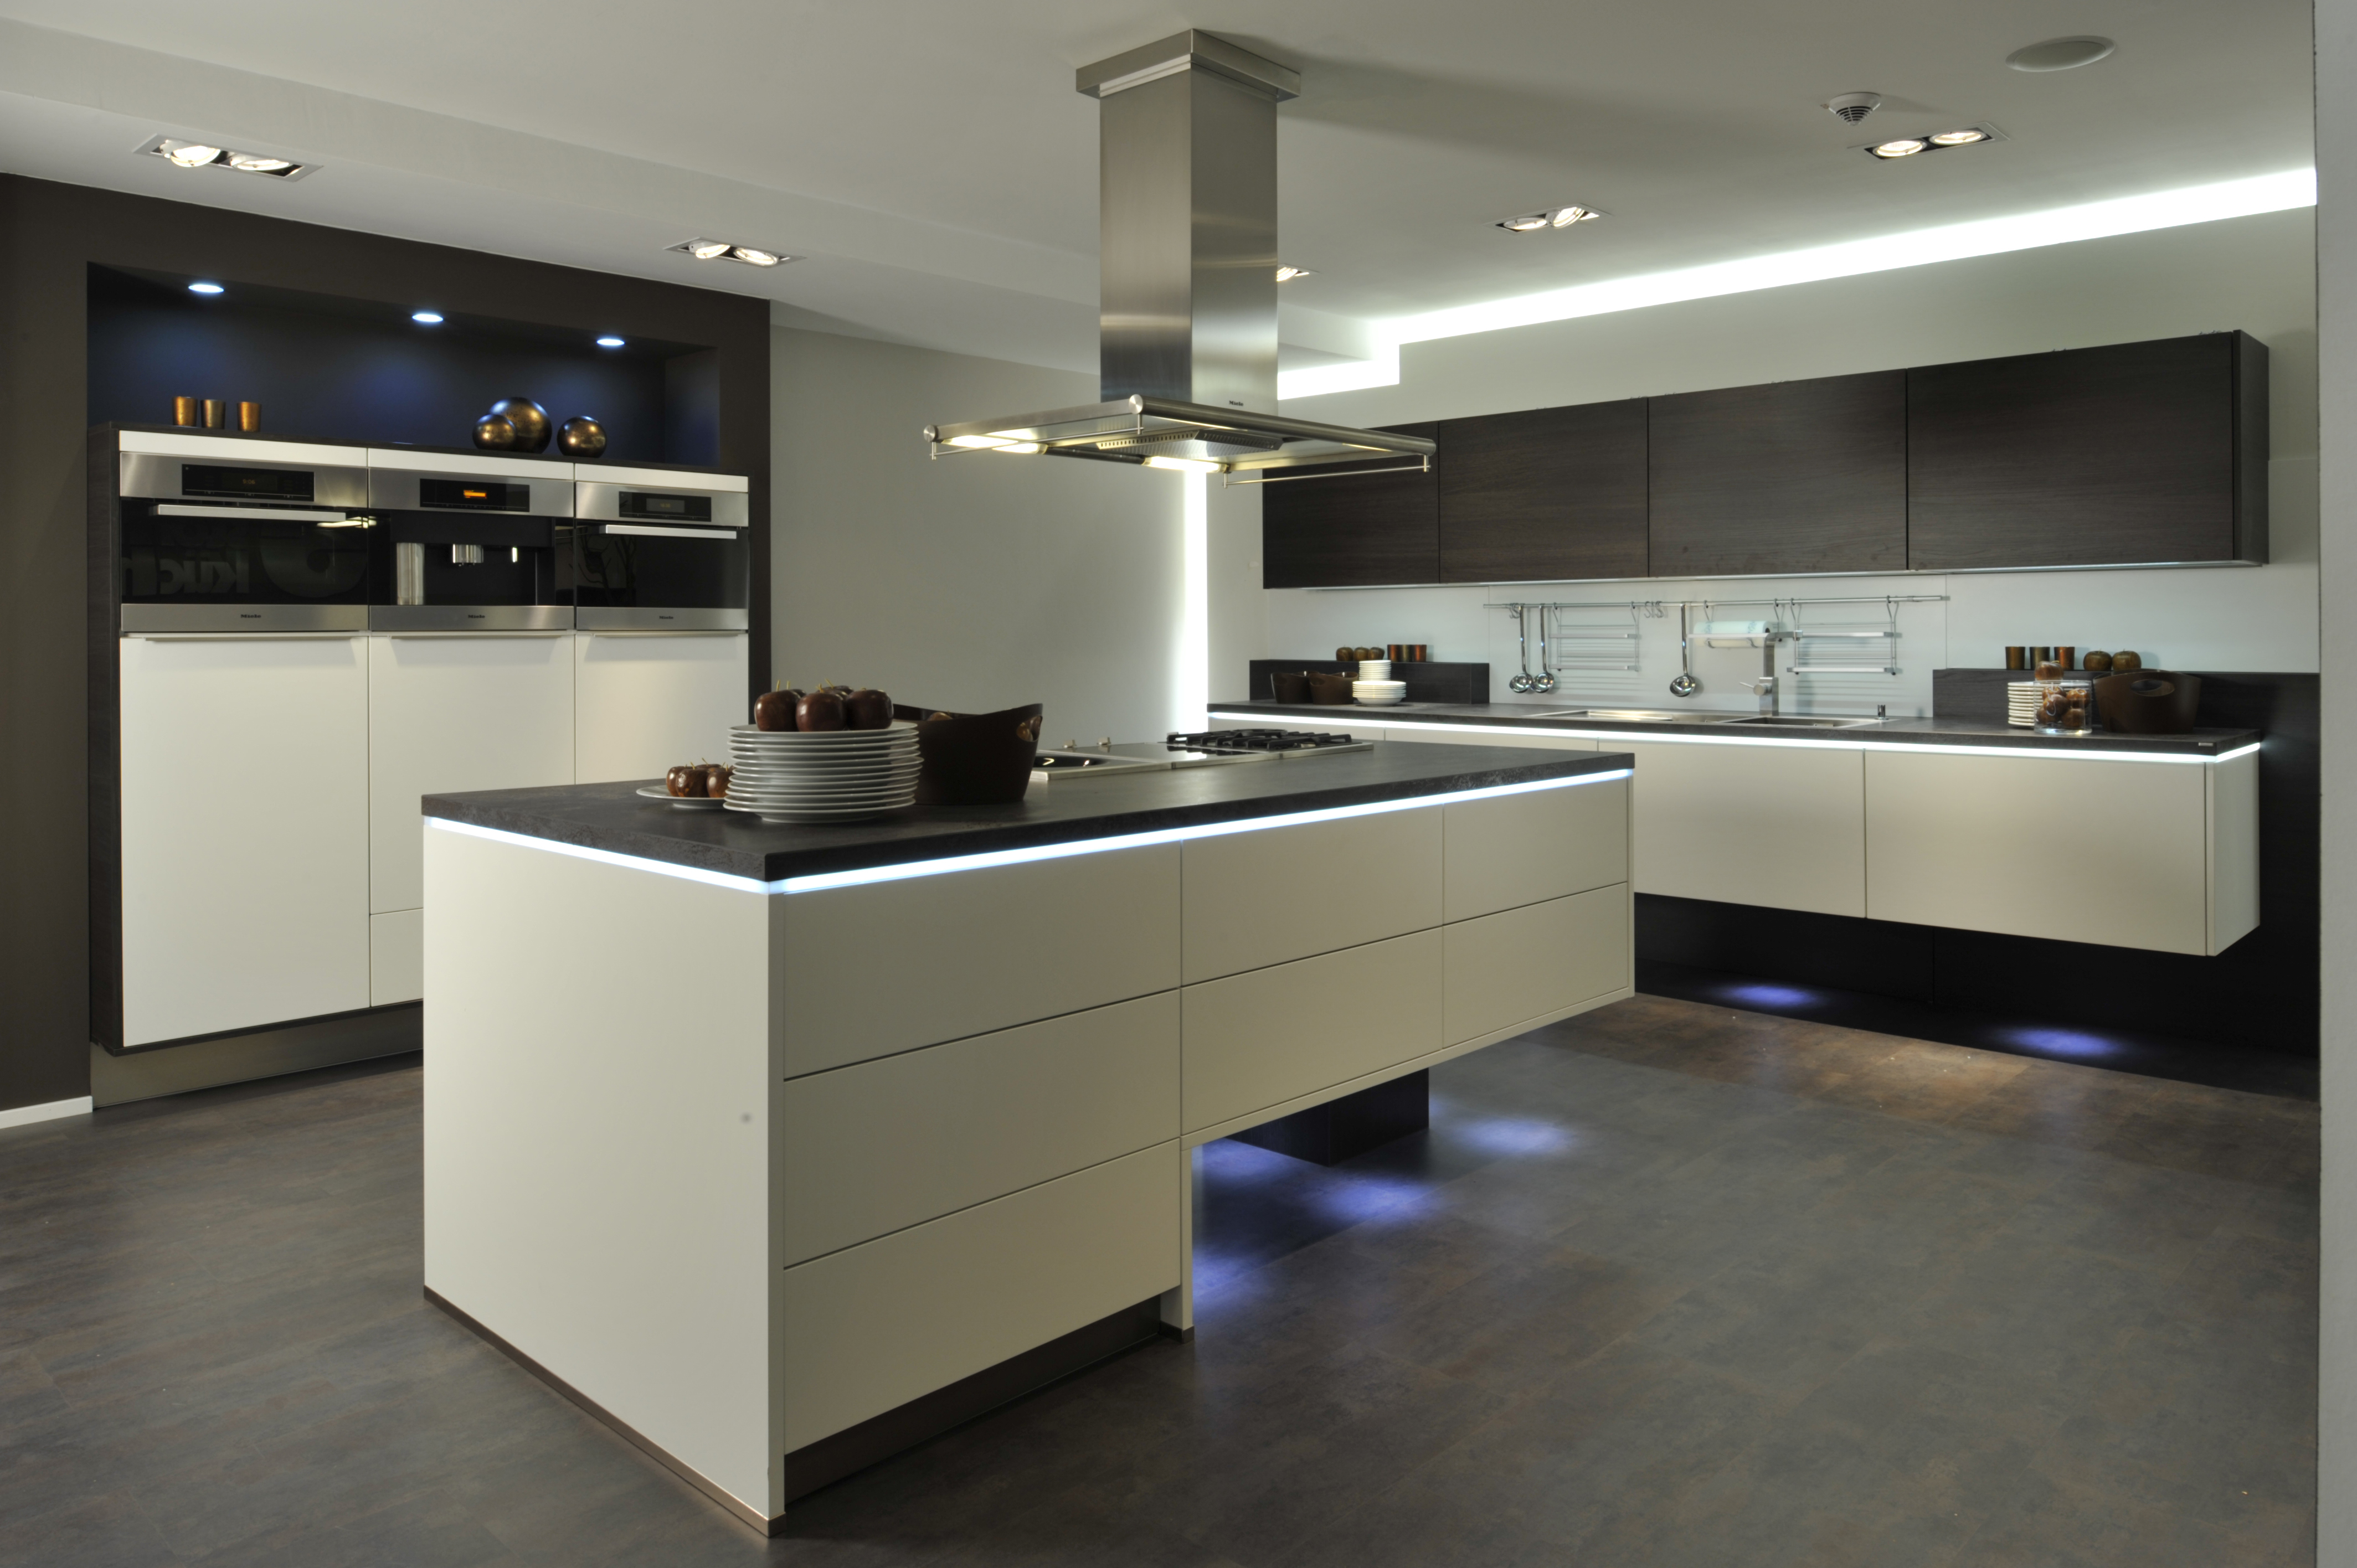 Floating kitchen le havre normandie